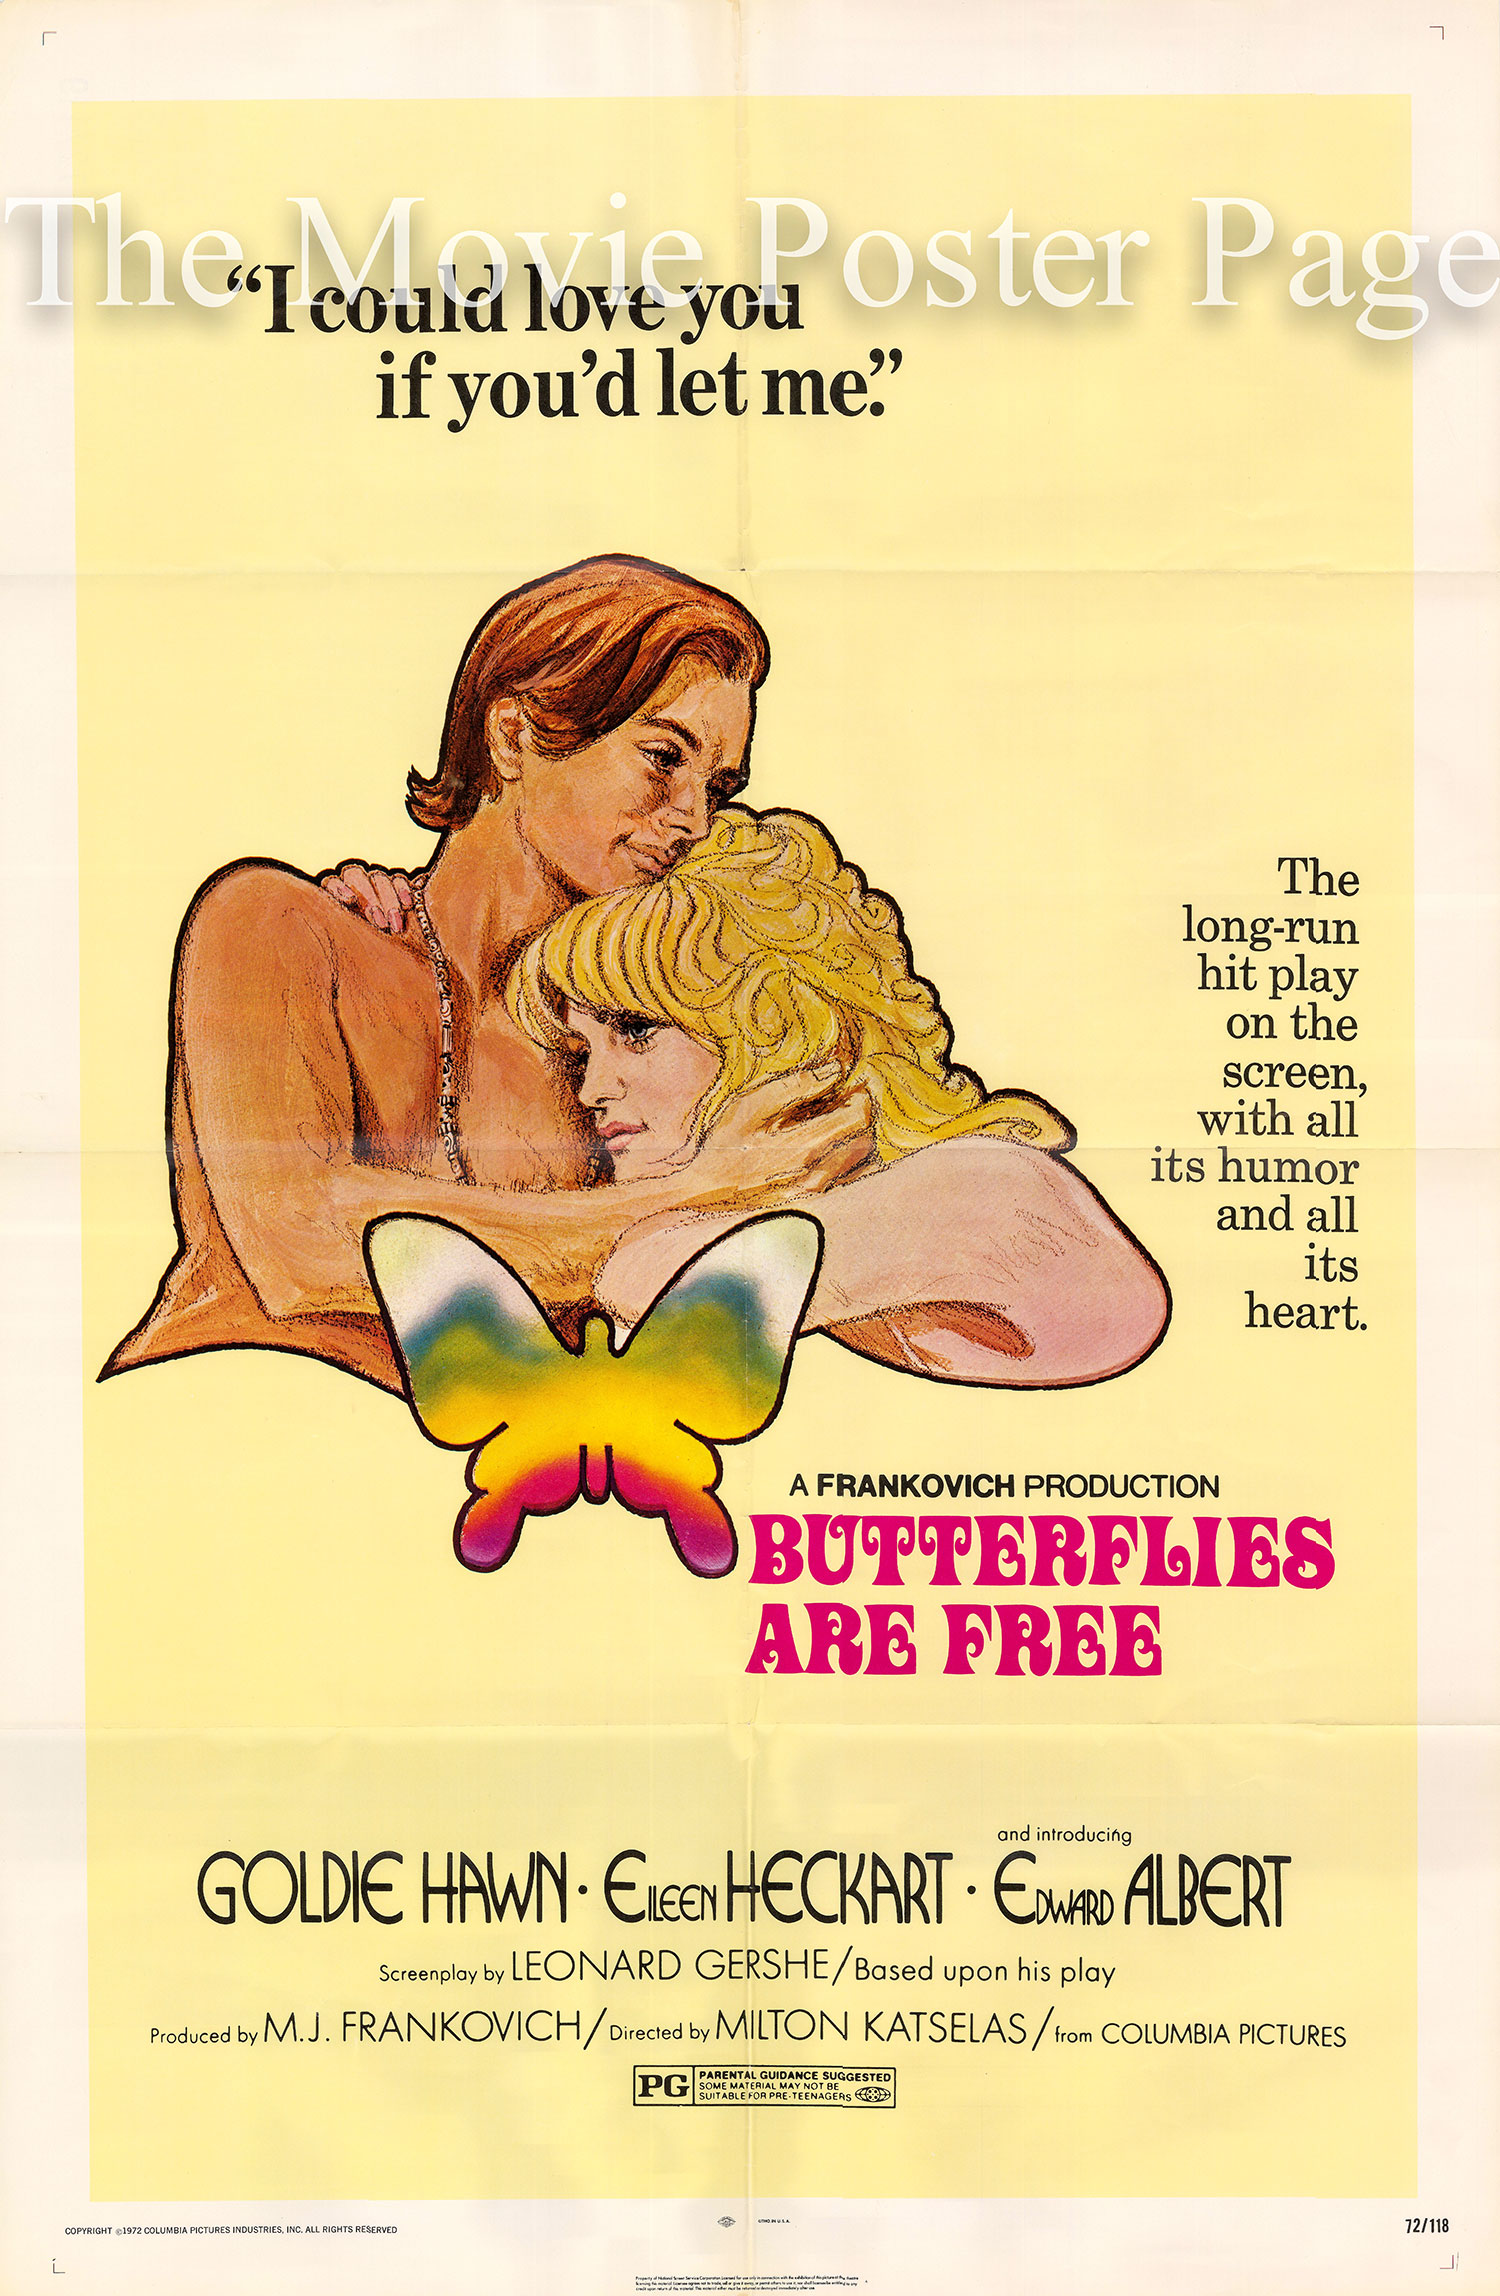 Pictured is a US one-sheet poster for the 1972 Milton Katselas film Butterflies Are Free starring Goldie Hawn.